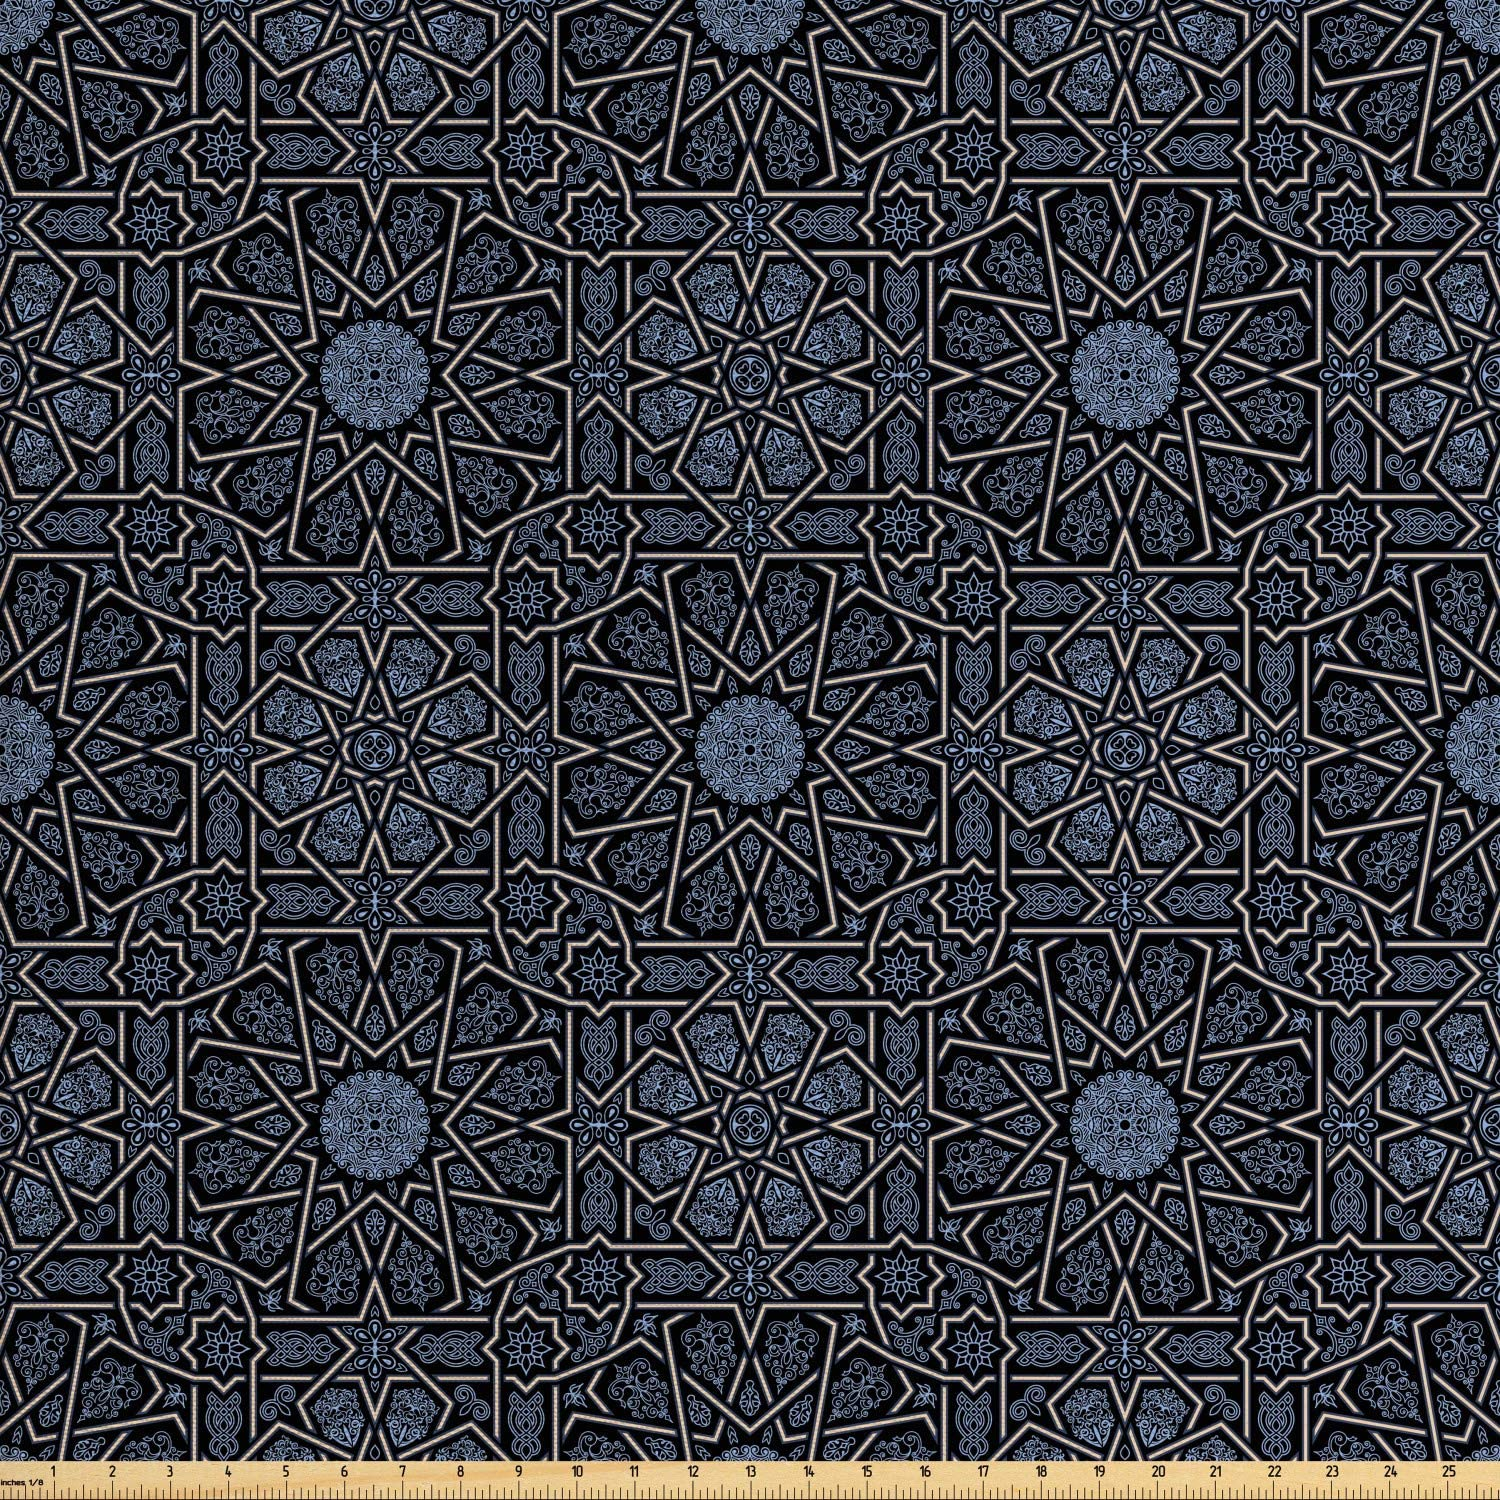 Ambesonne Moroccan Fabric by The Yard, Geometric Design with Old Rich Royal Elements and Moroccan Star Dark, Decorative Fabric for Upholstery and Home Accents, 1 Yard, Black Cream